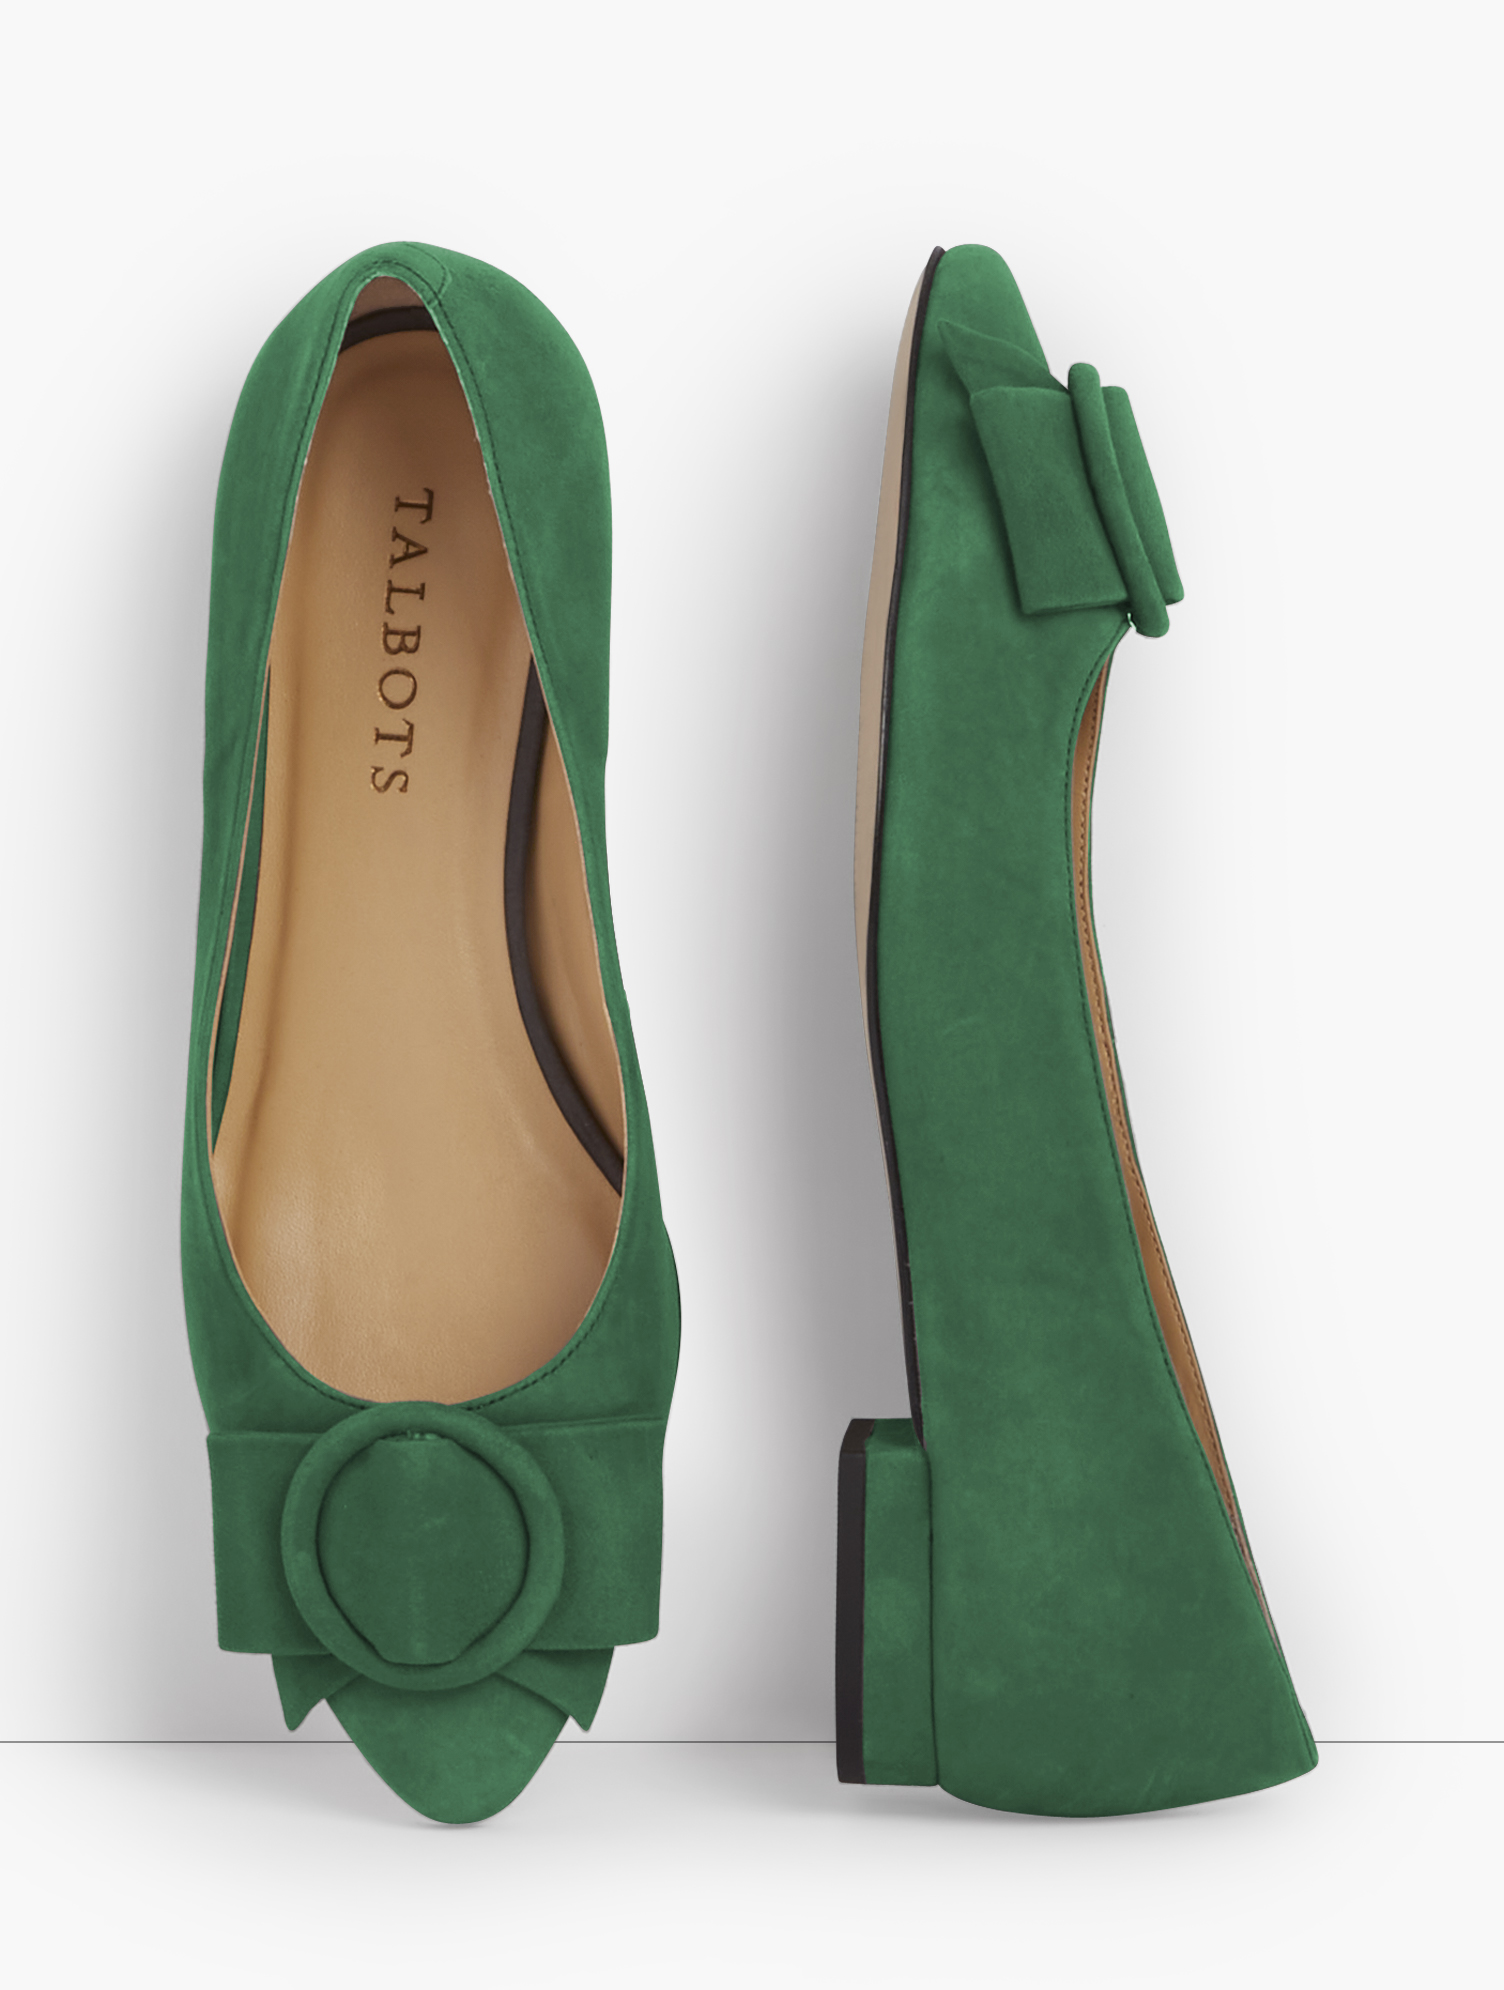 The Edison, in rich suede. Timely and timeless. Updated with a suede ring and bow detail. Features Flat heel Almond Toe 3MM Memory Foam Footbed Suede ring and bow detail on upper Imported Material: 100% Leather Edison Suede Bow Flats - Meadow - 11M Talbots